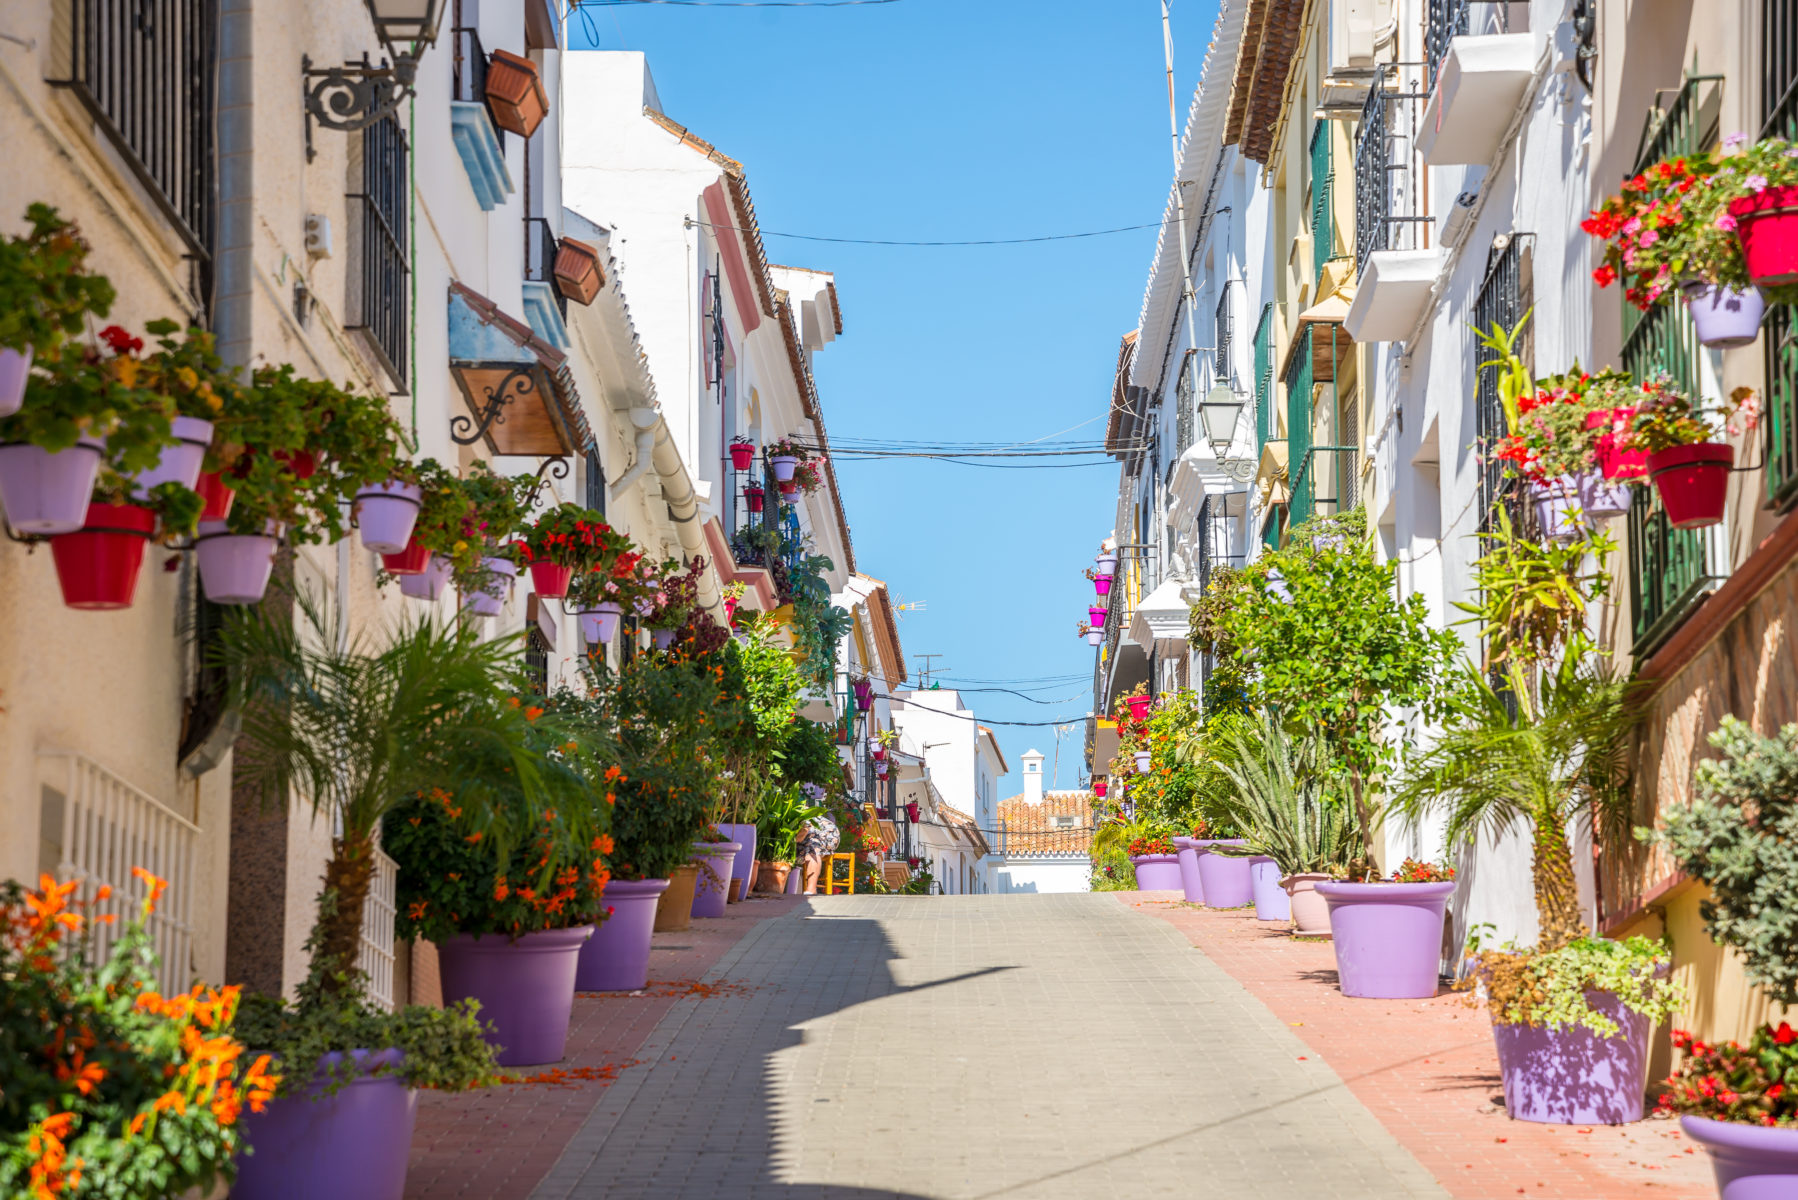 Scenic alleyway in Estepona, Spain